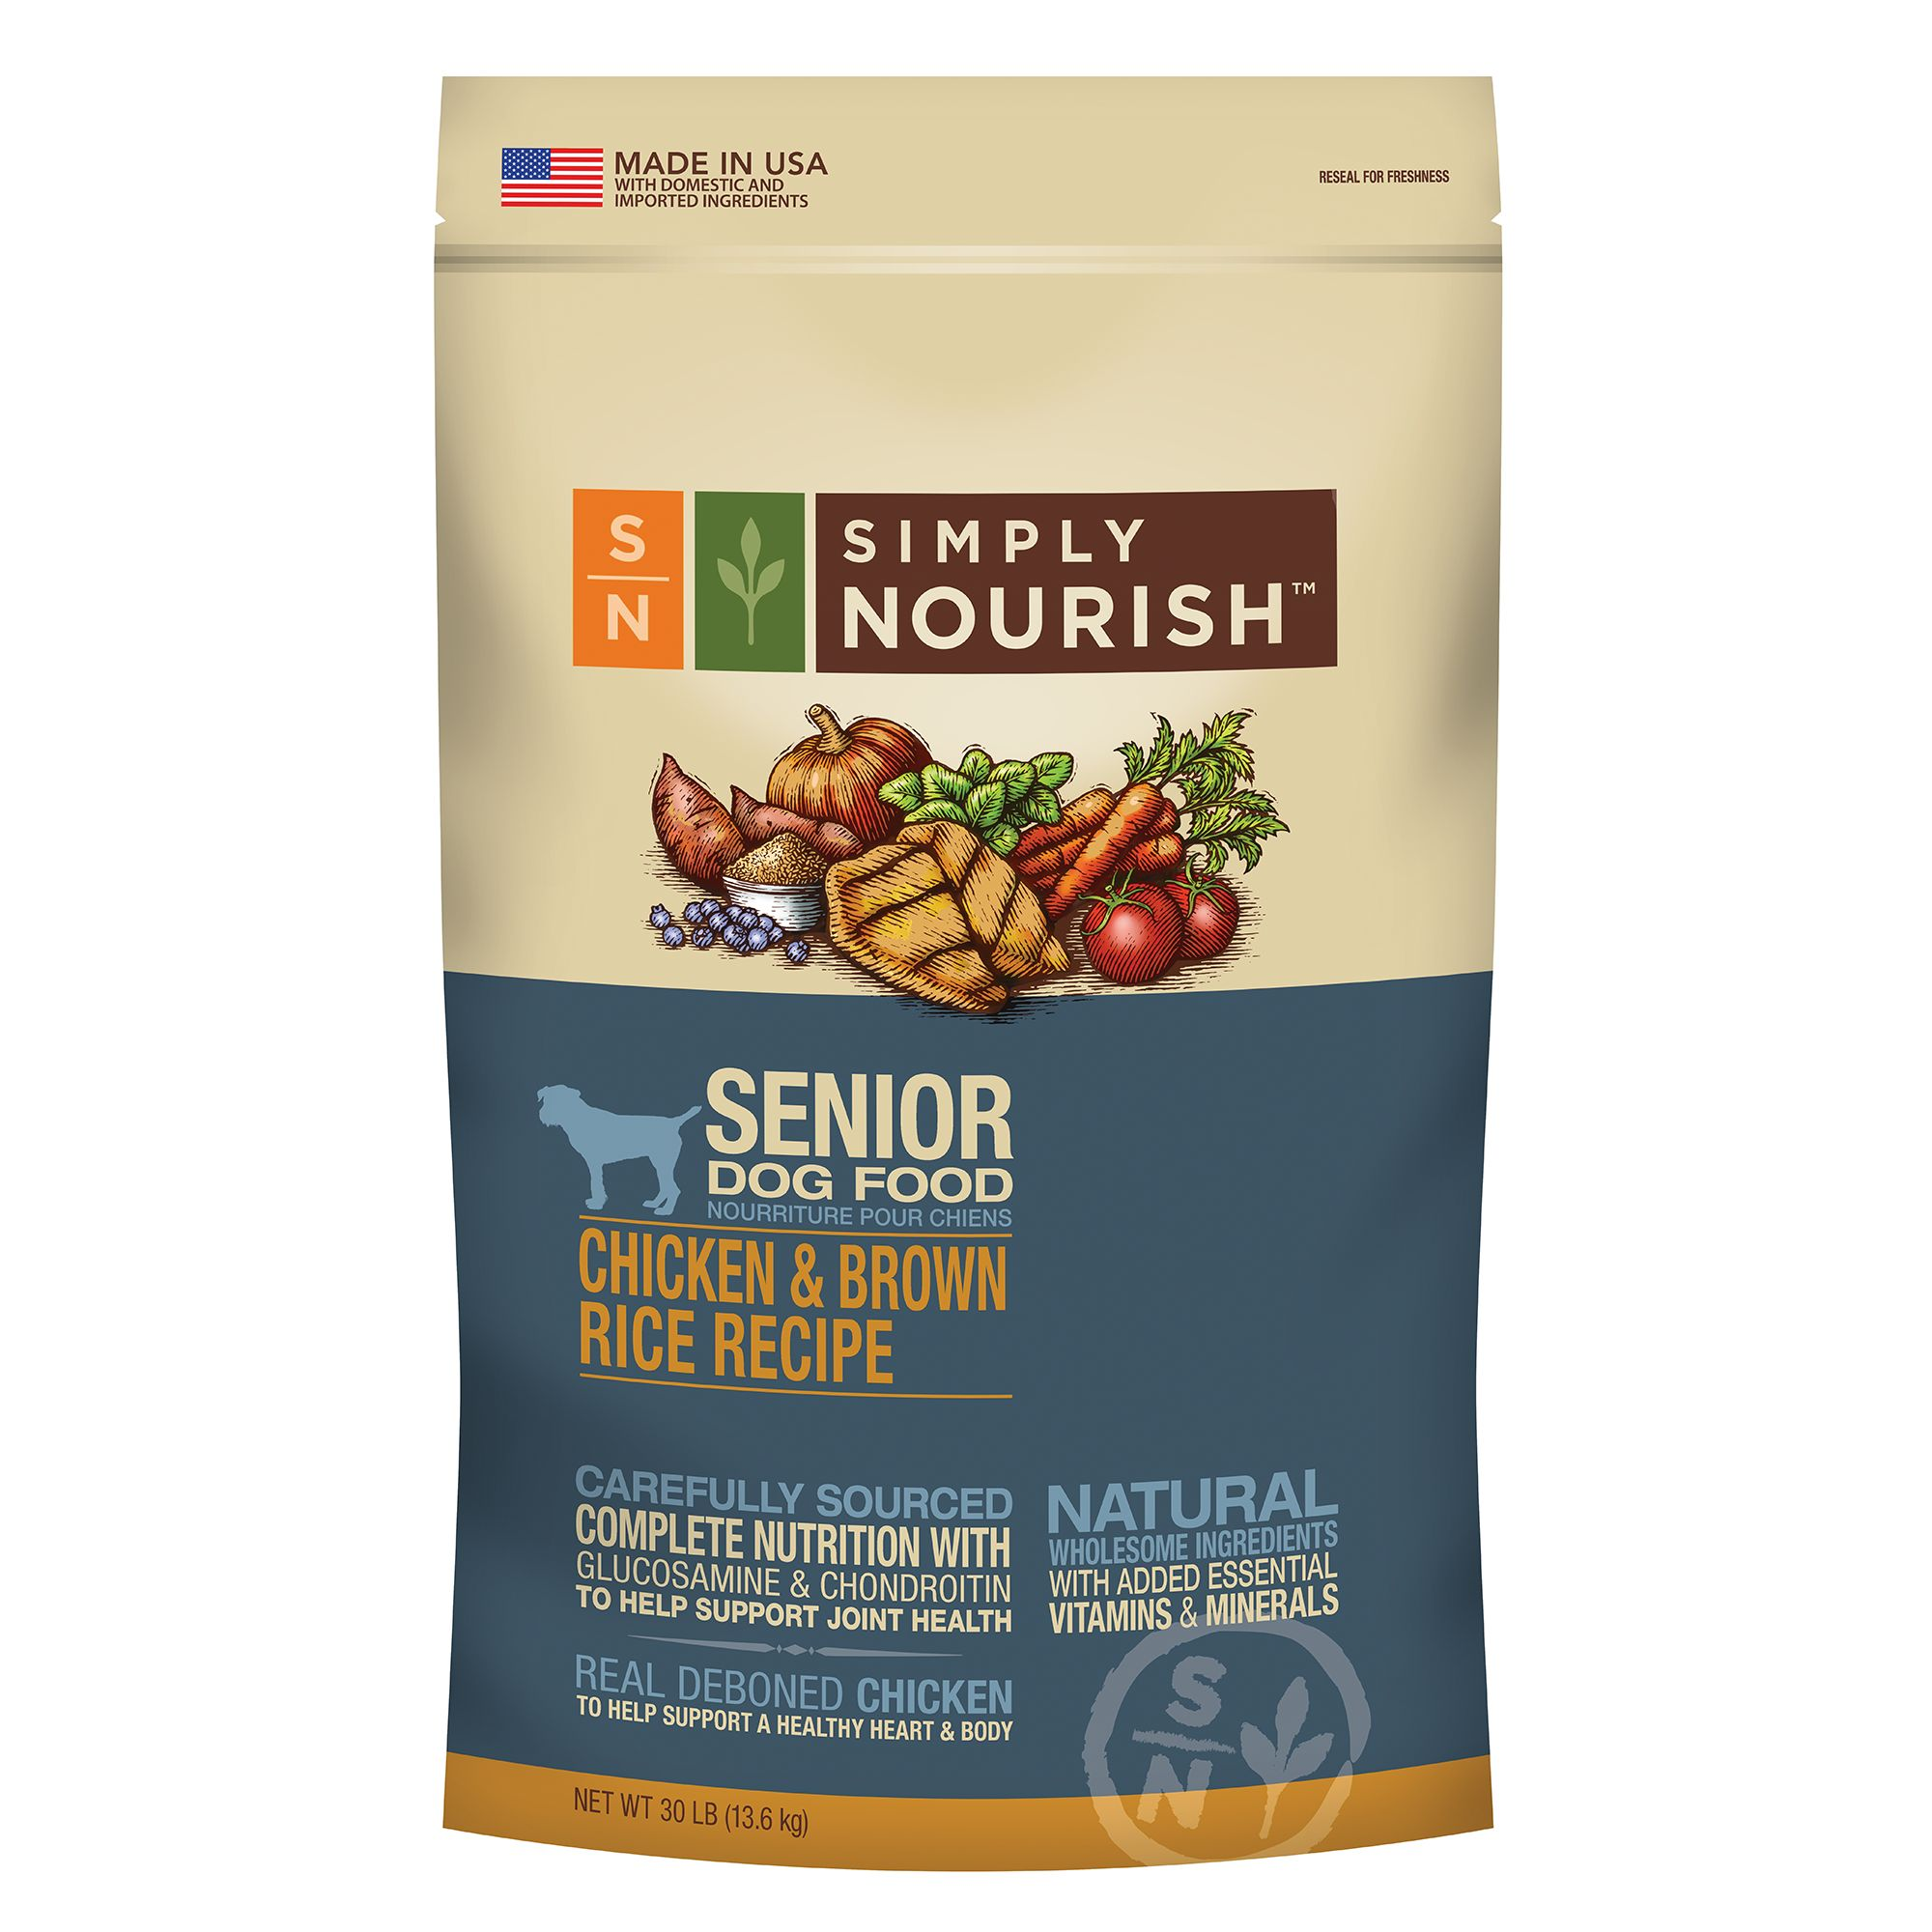 Simply Nourish, Senior Dog Food - Natural, Chicken and Brown Rice size: 30 Lb 5197936